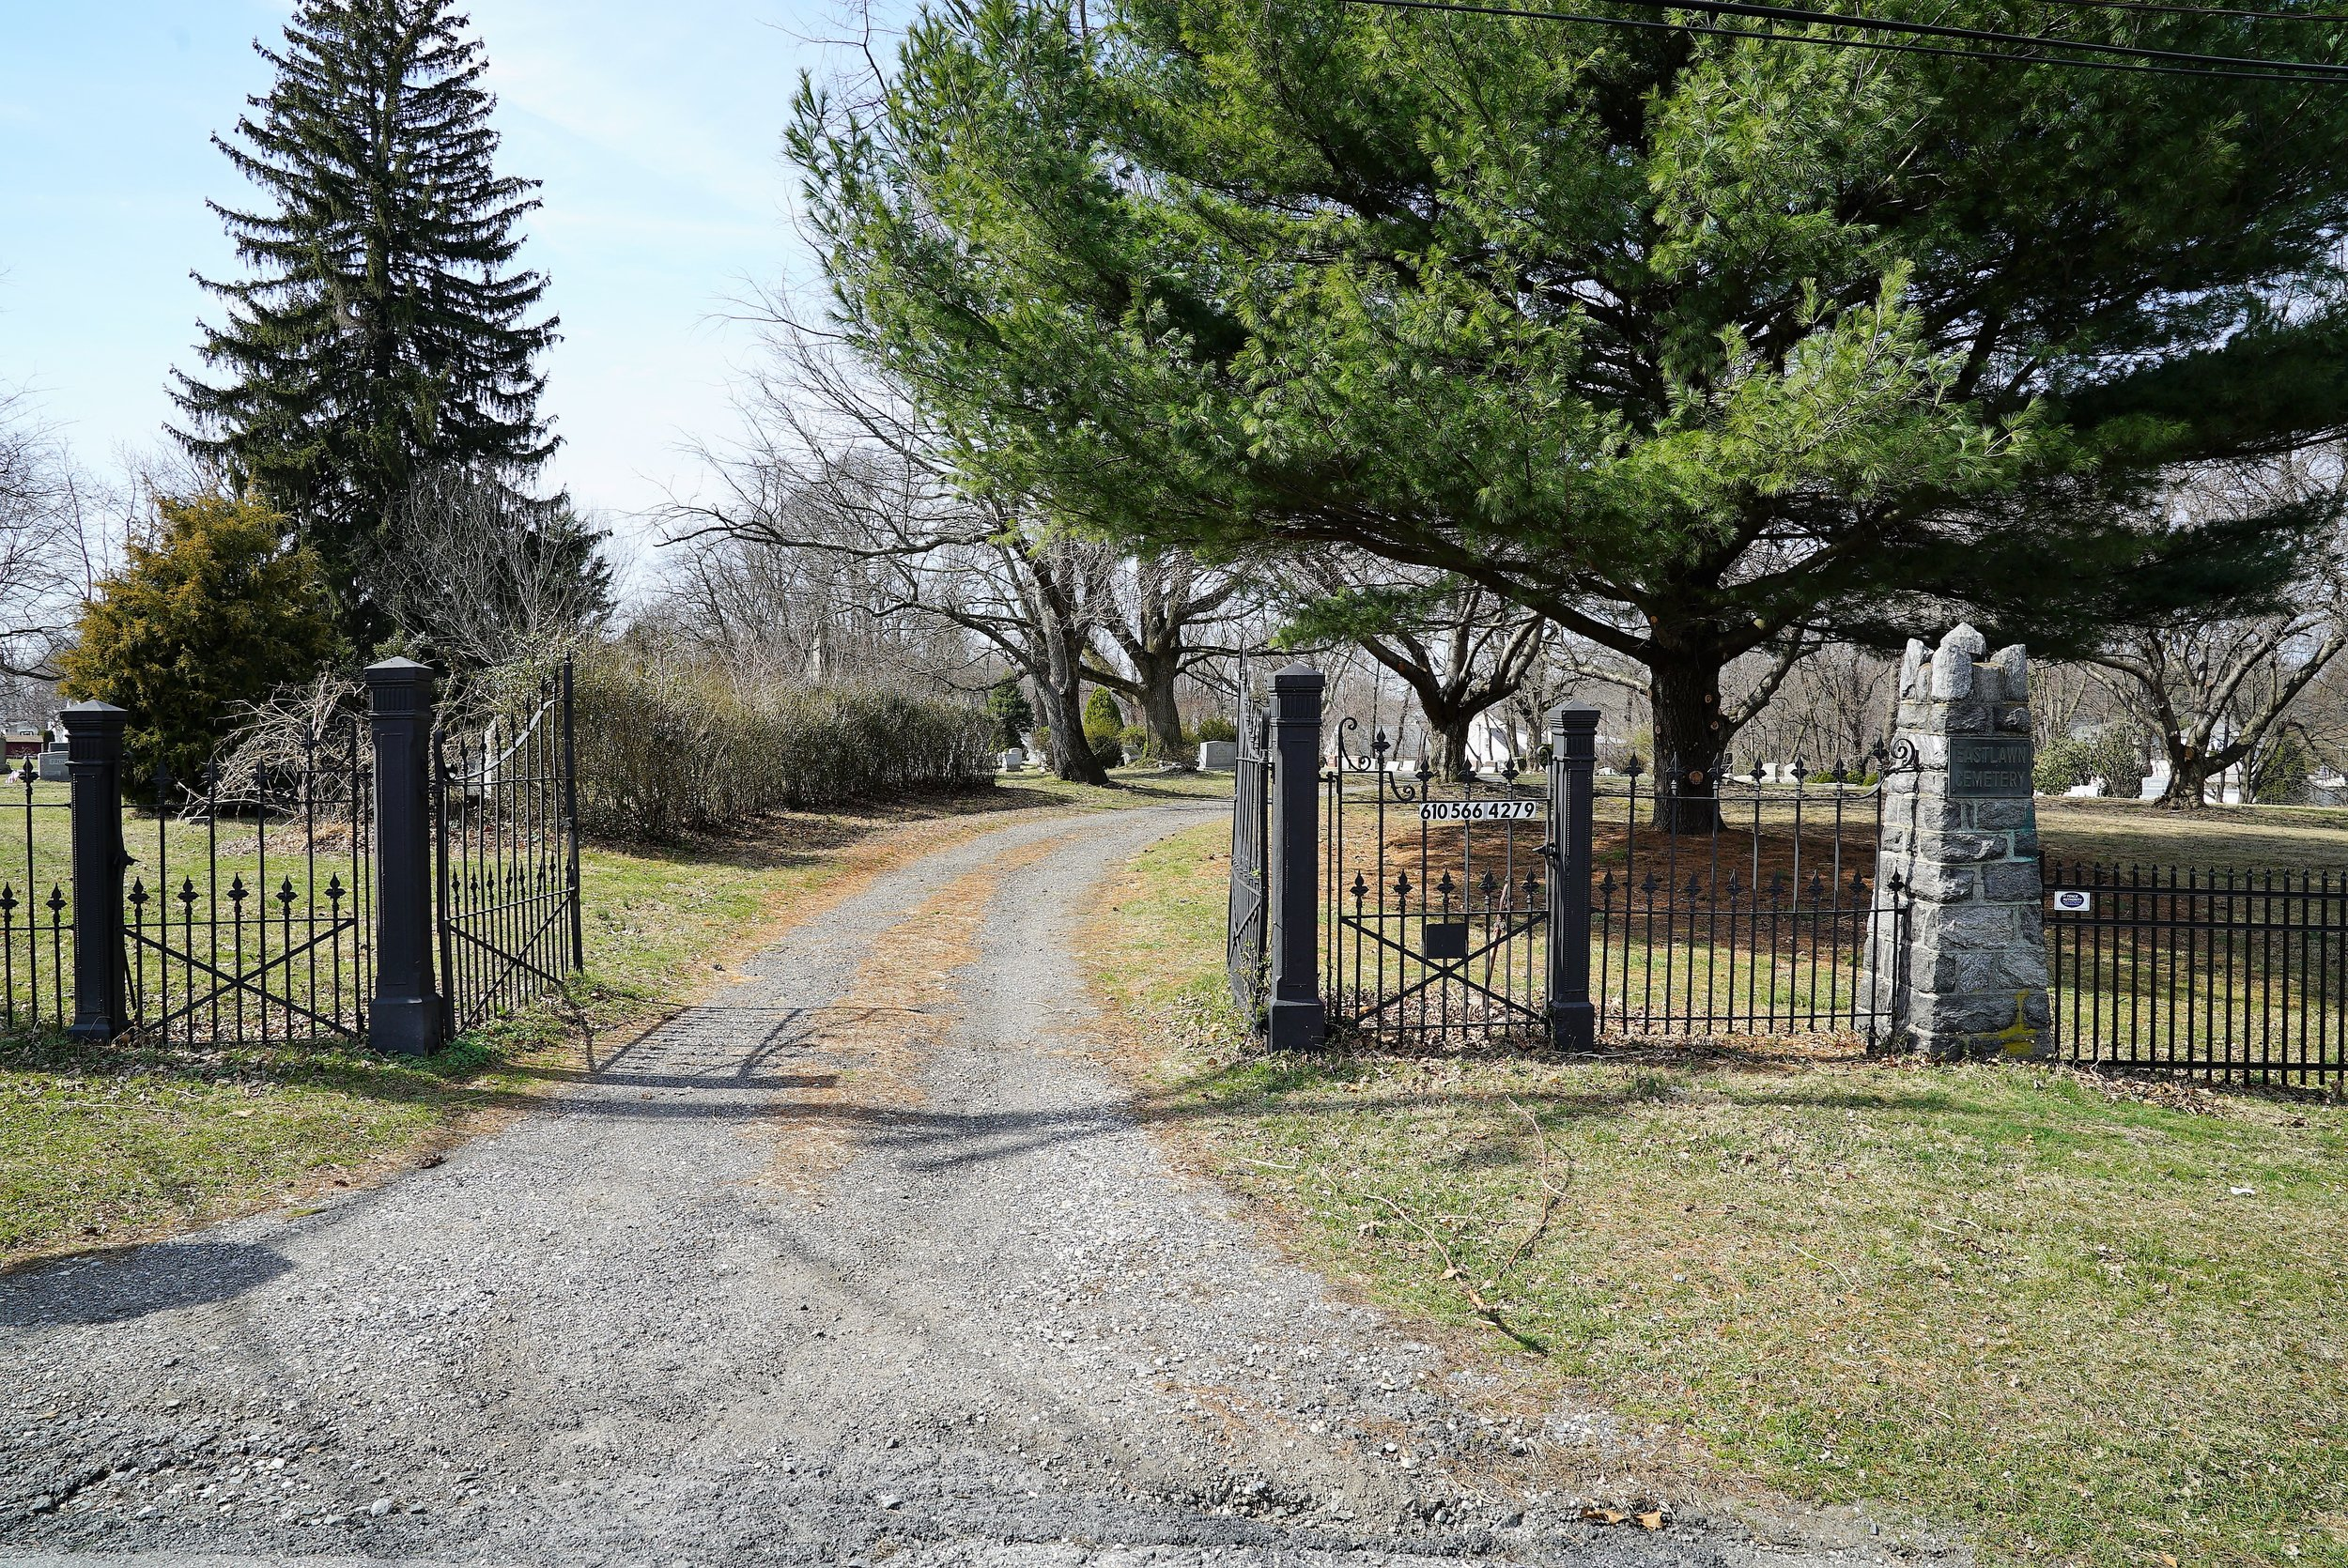 Entrance to Eastlawn Cemetery in the neighborhood known as Milmont Park, Ridley Township, Pennsylvania.